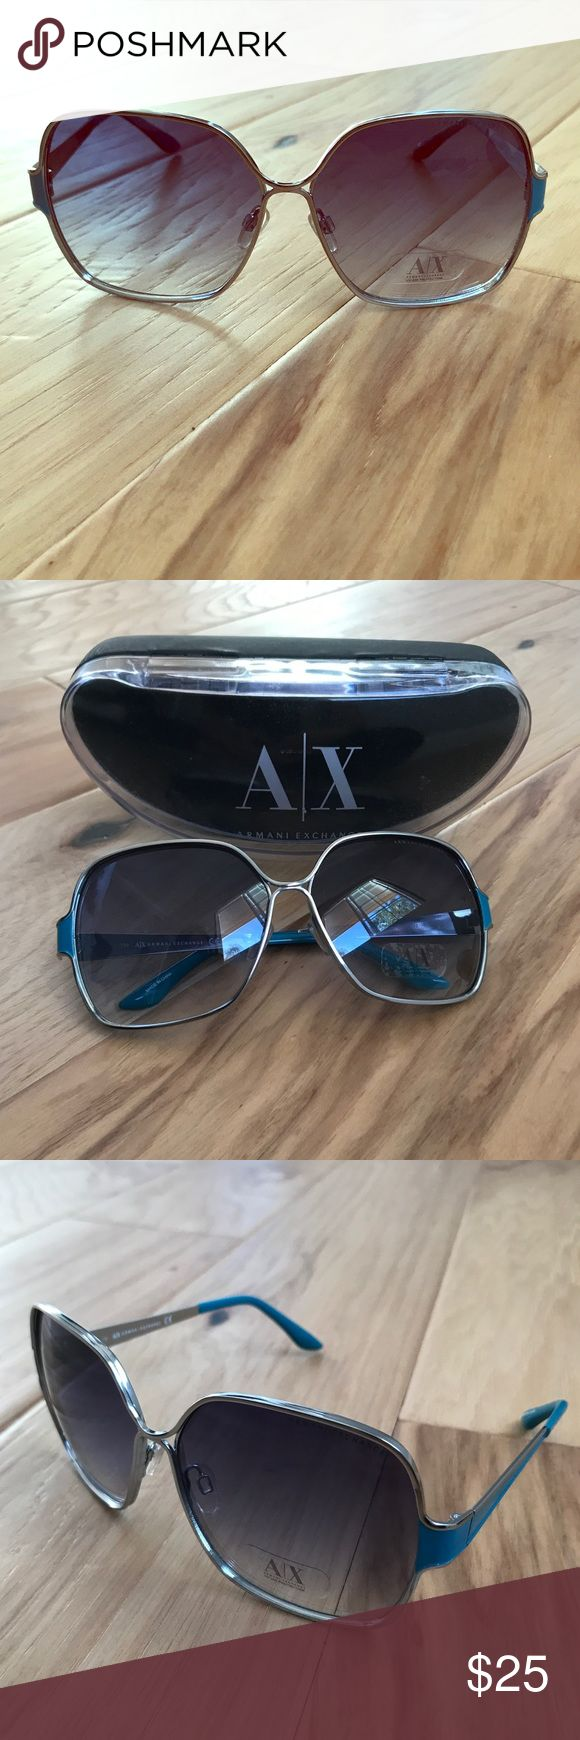 Authentic Armani Exchange square sunglasses Authentic Armani Exchange women's square sunglasses. Turquoise blue accents on the sides of frames. Retro style. Adds a great pop of color to an outfit and character. Comes with original case. Great condition- no marks or scratches. Armani Exchange Accessories Sunglasses